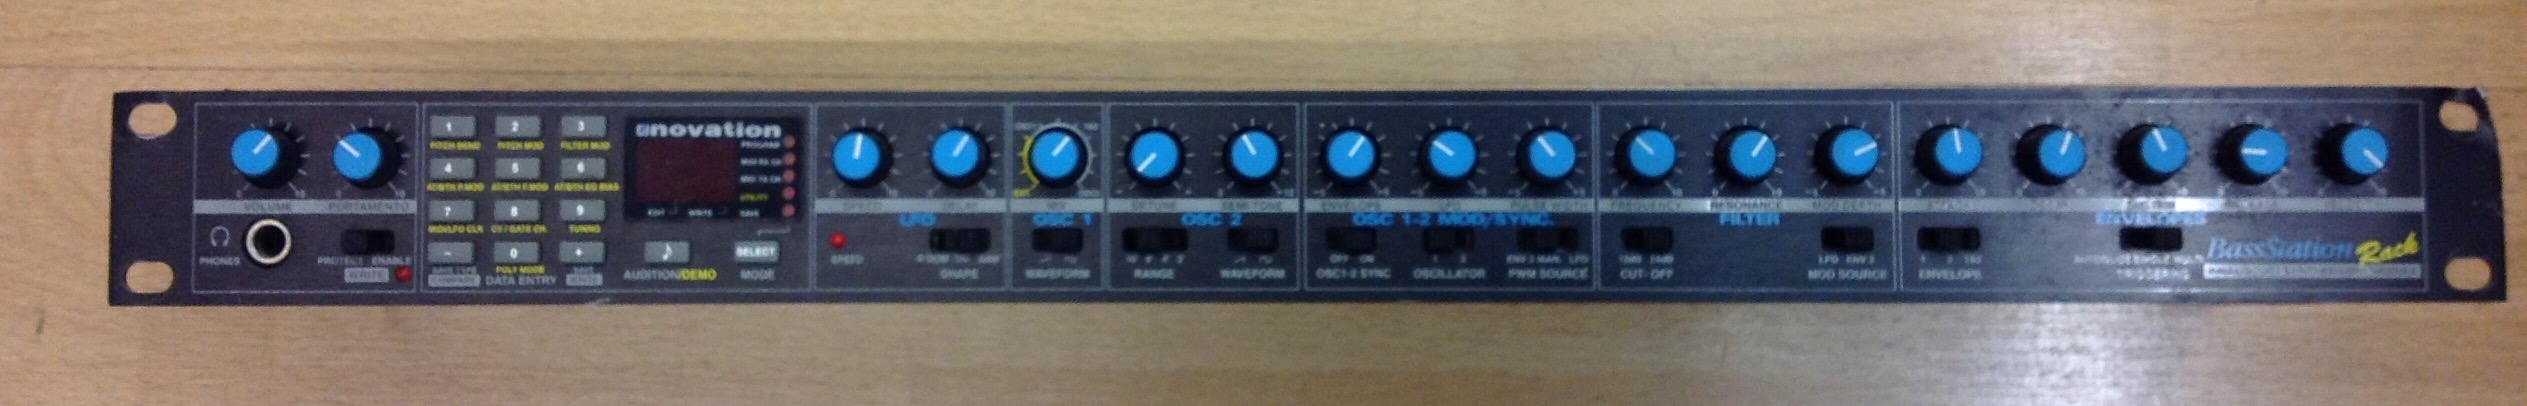 Picture of Novation BassStation rack